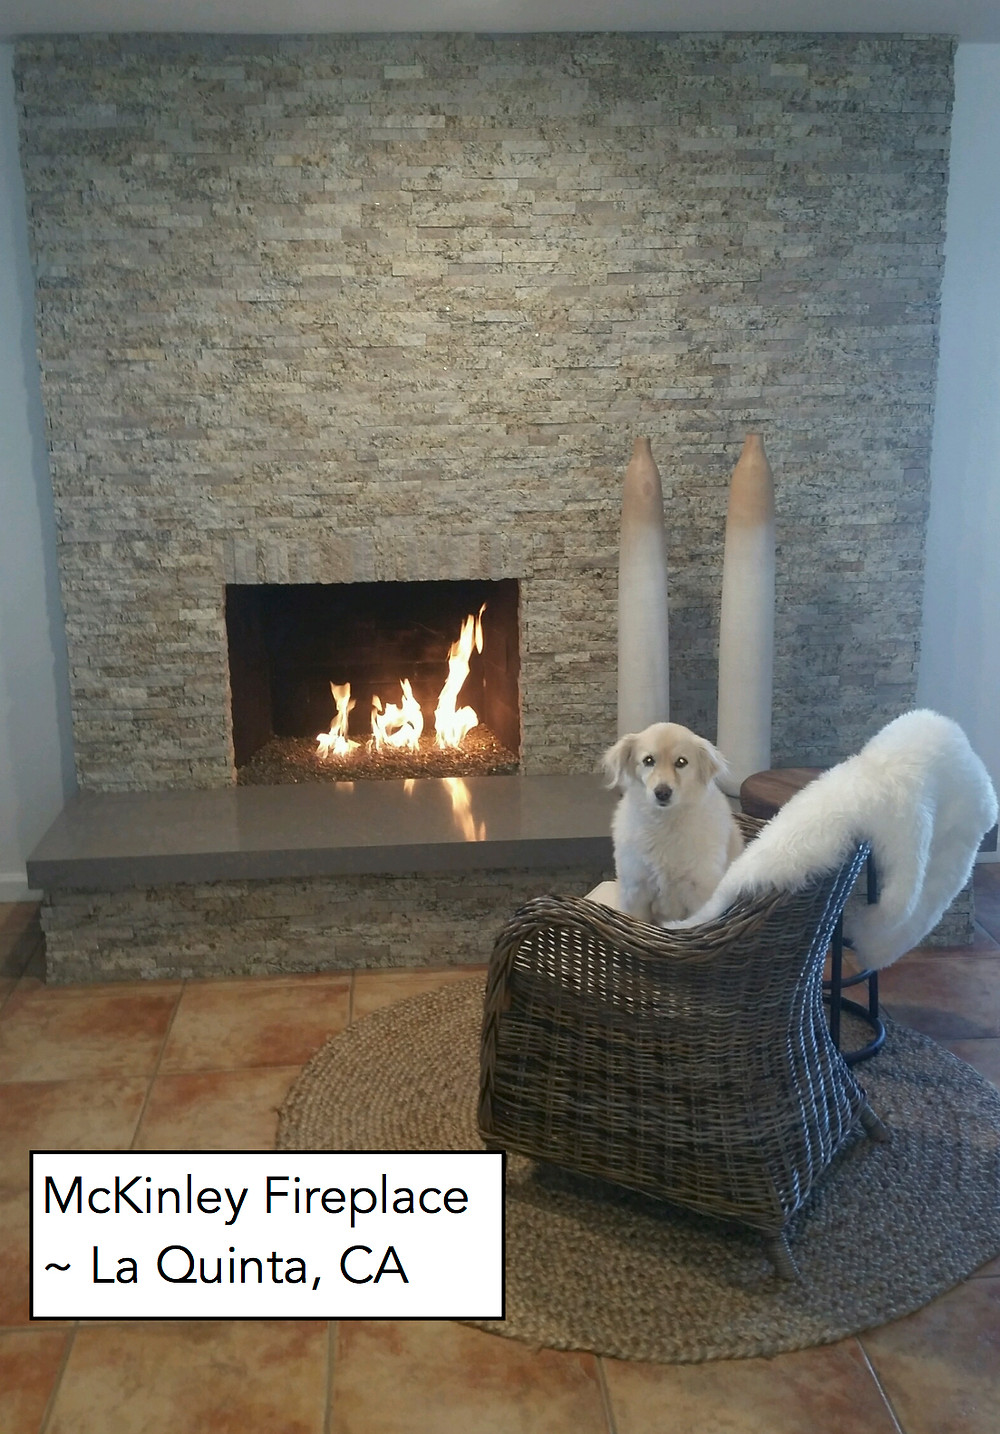 McKinley Fireplace